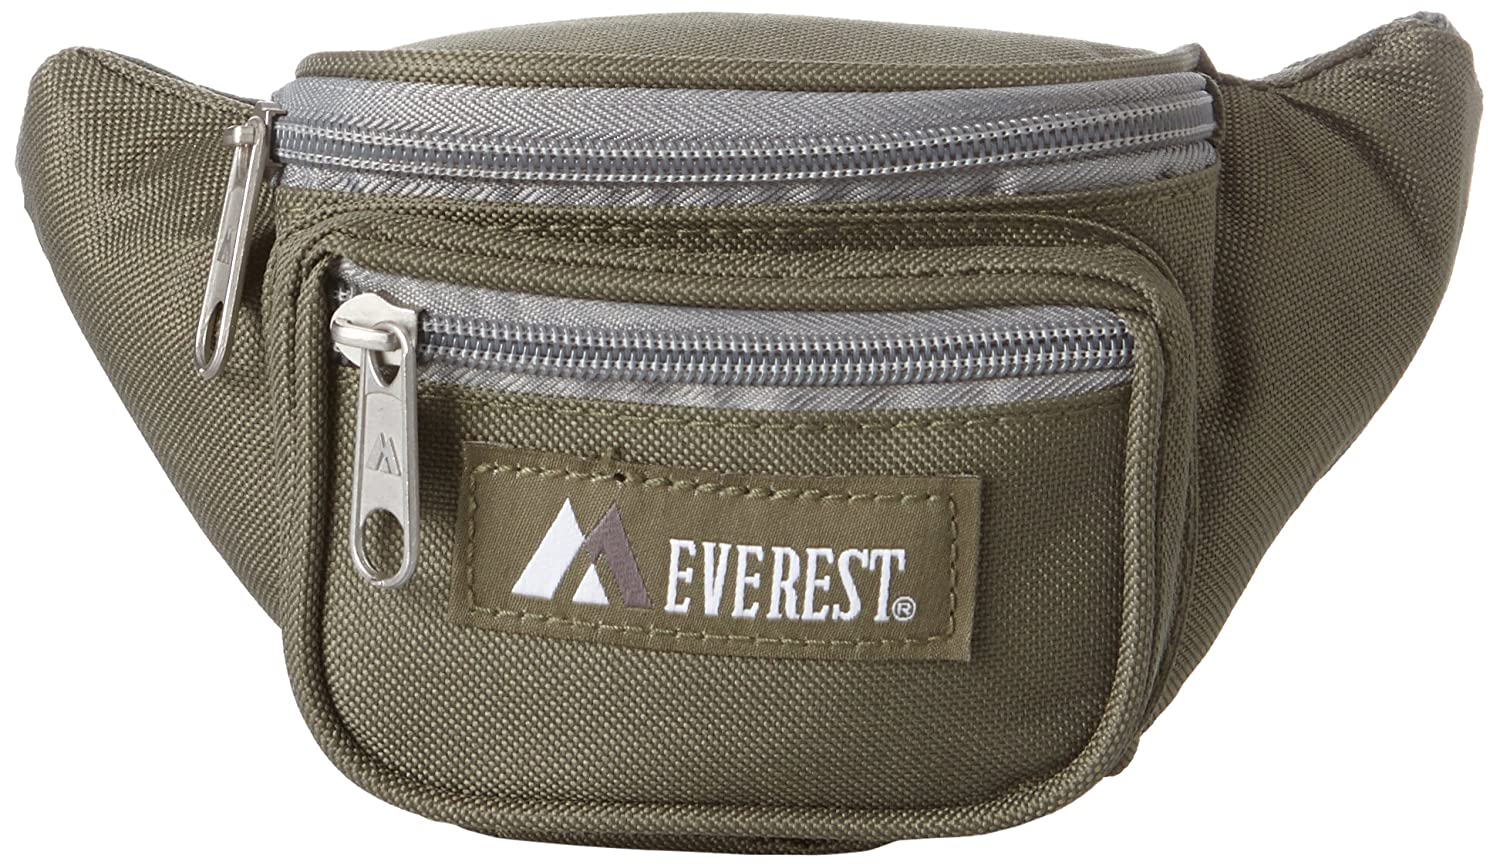 Everest Signature Waist Pack - Junior, Coral, One Size EVFDS 044KS-COR